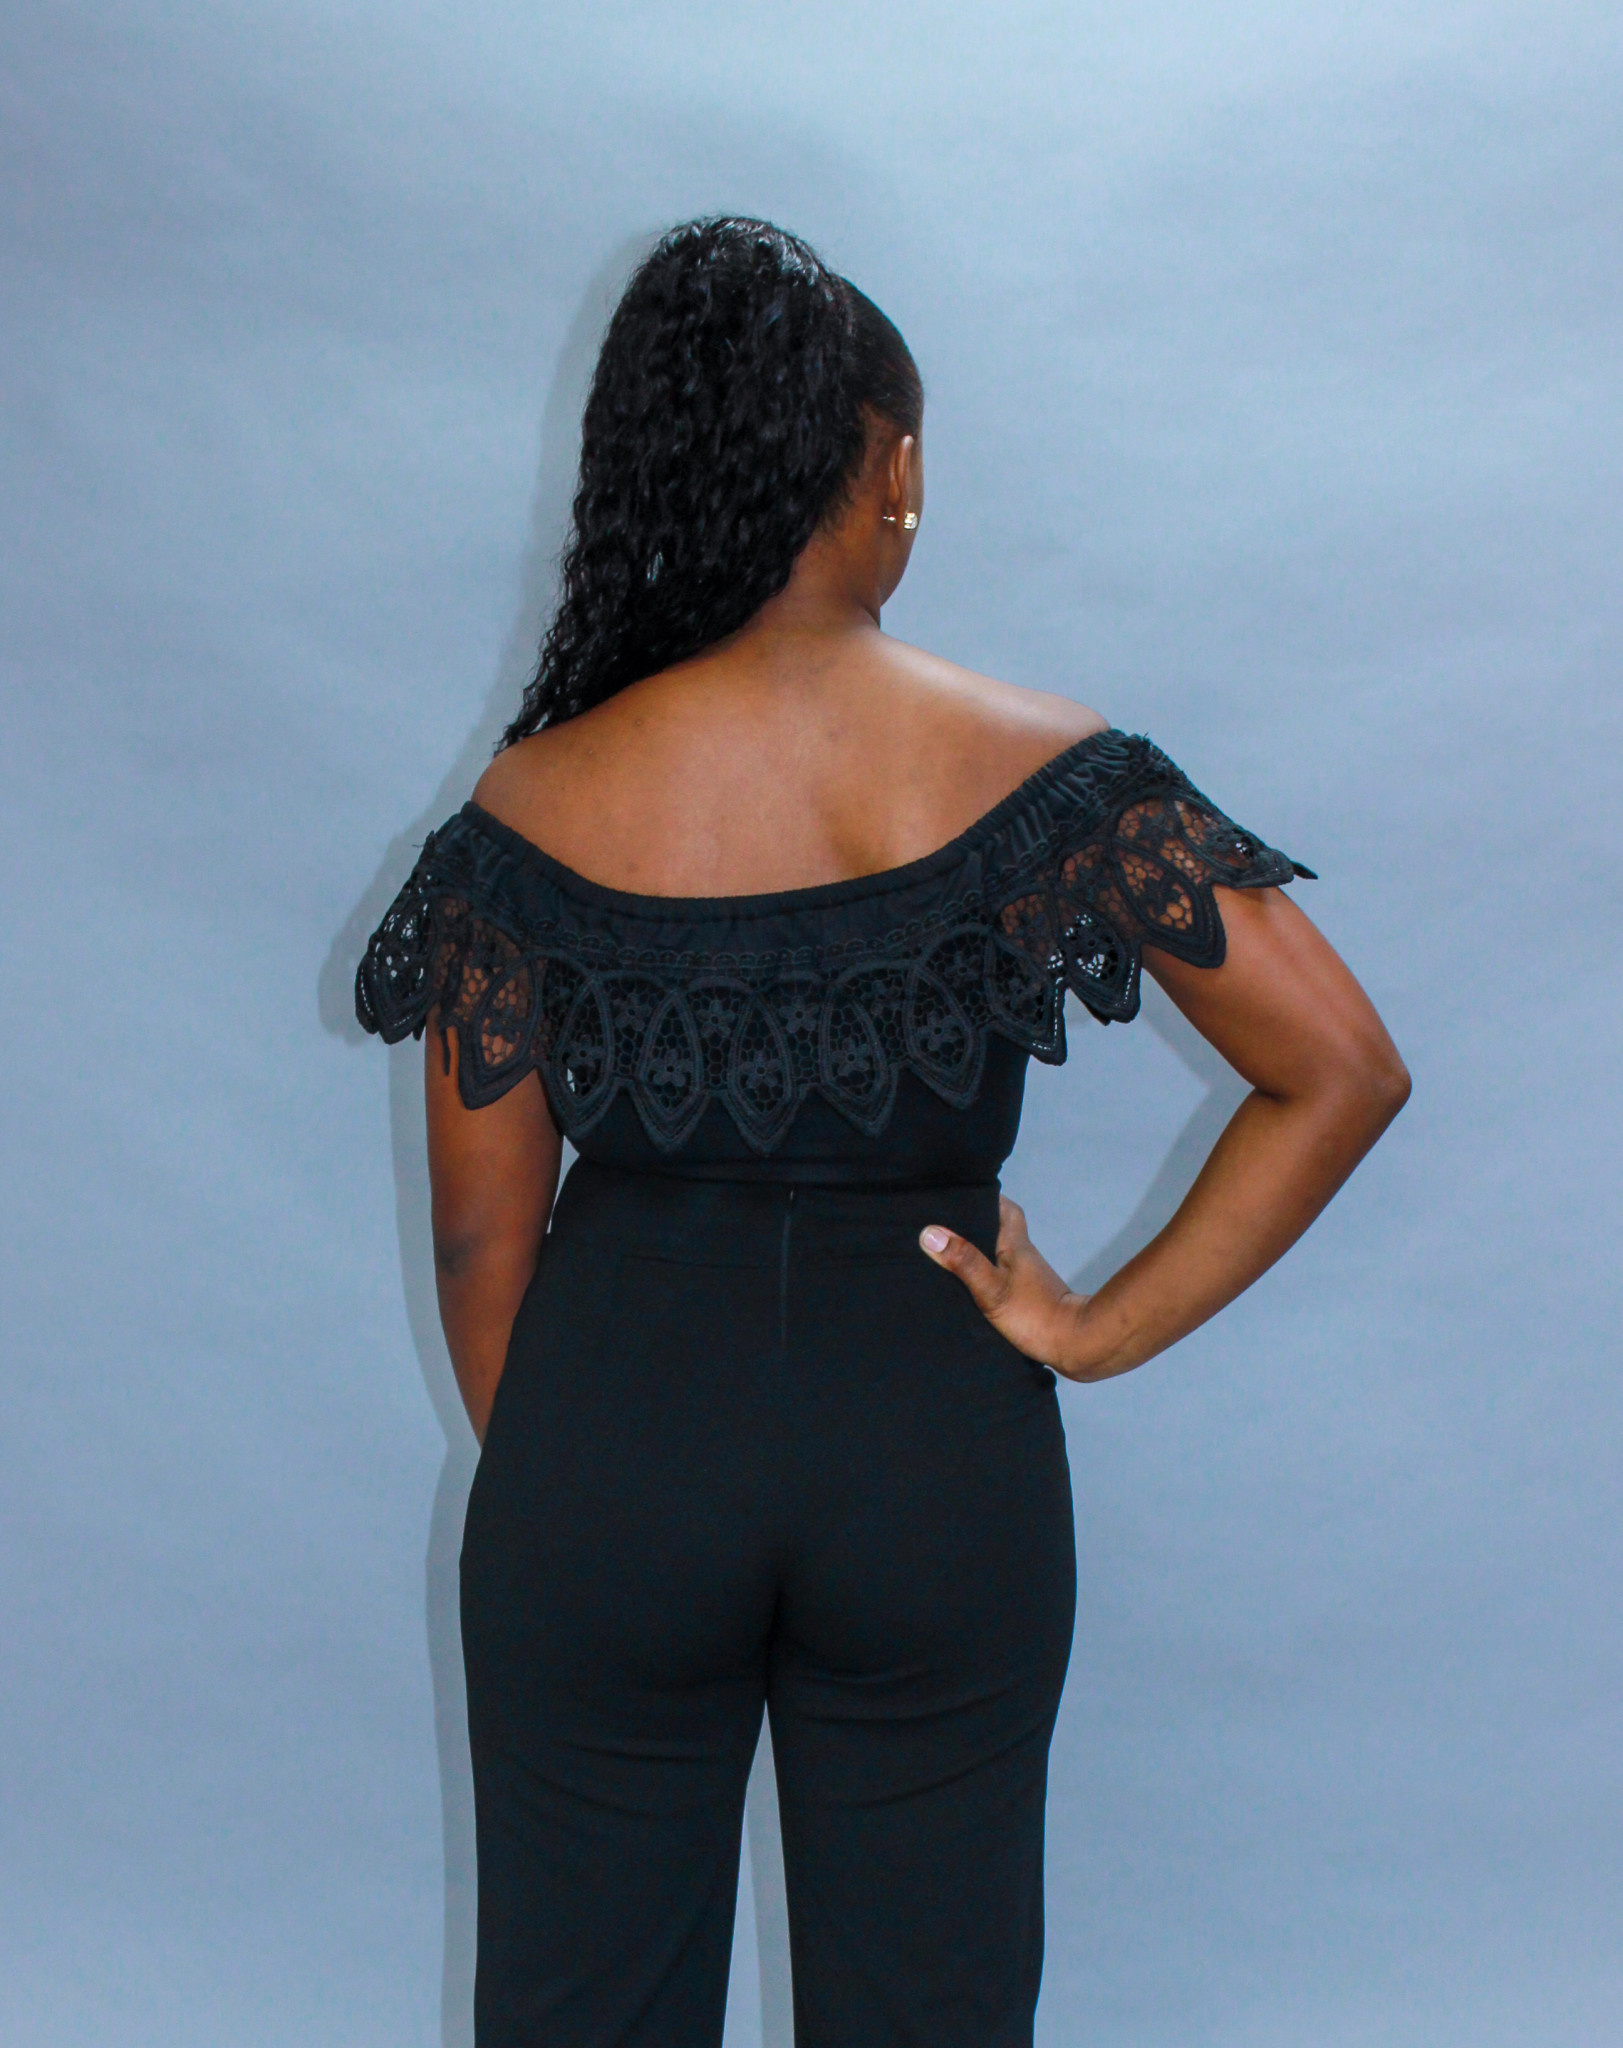 Black Swan Crochet Bodysuit